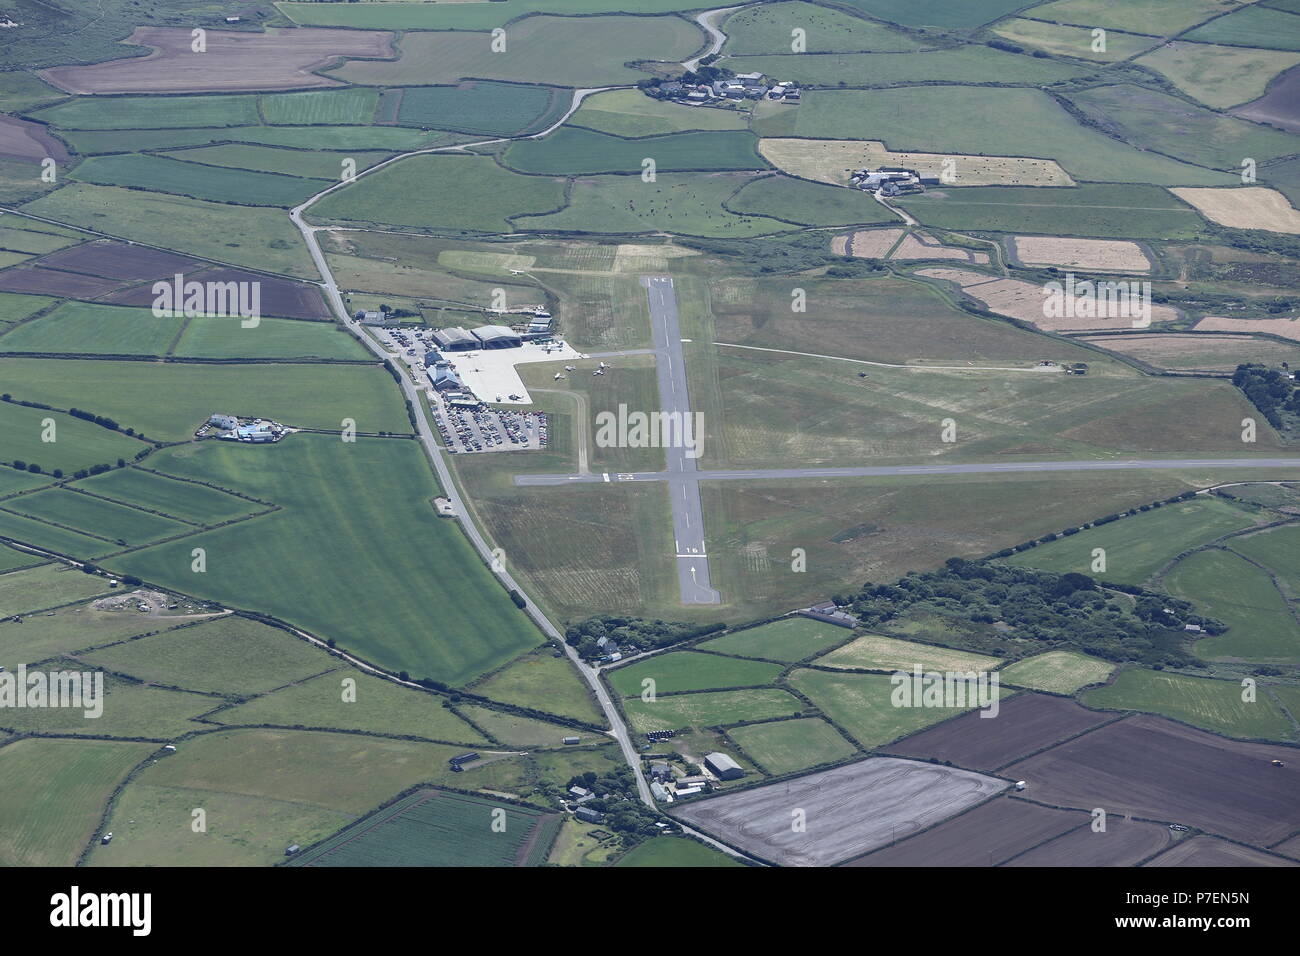 An aerial view of Land's End Airport - Stock Image